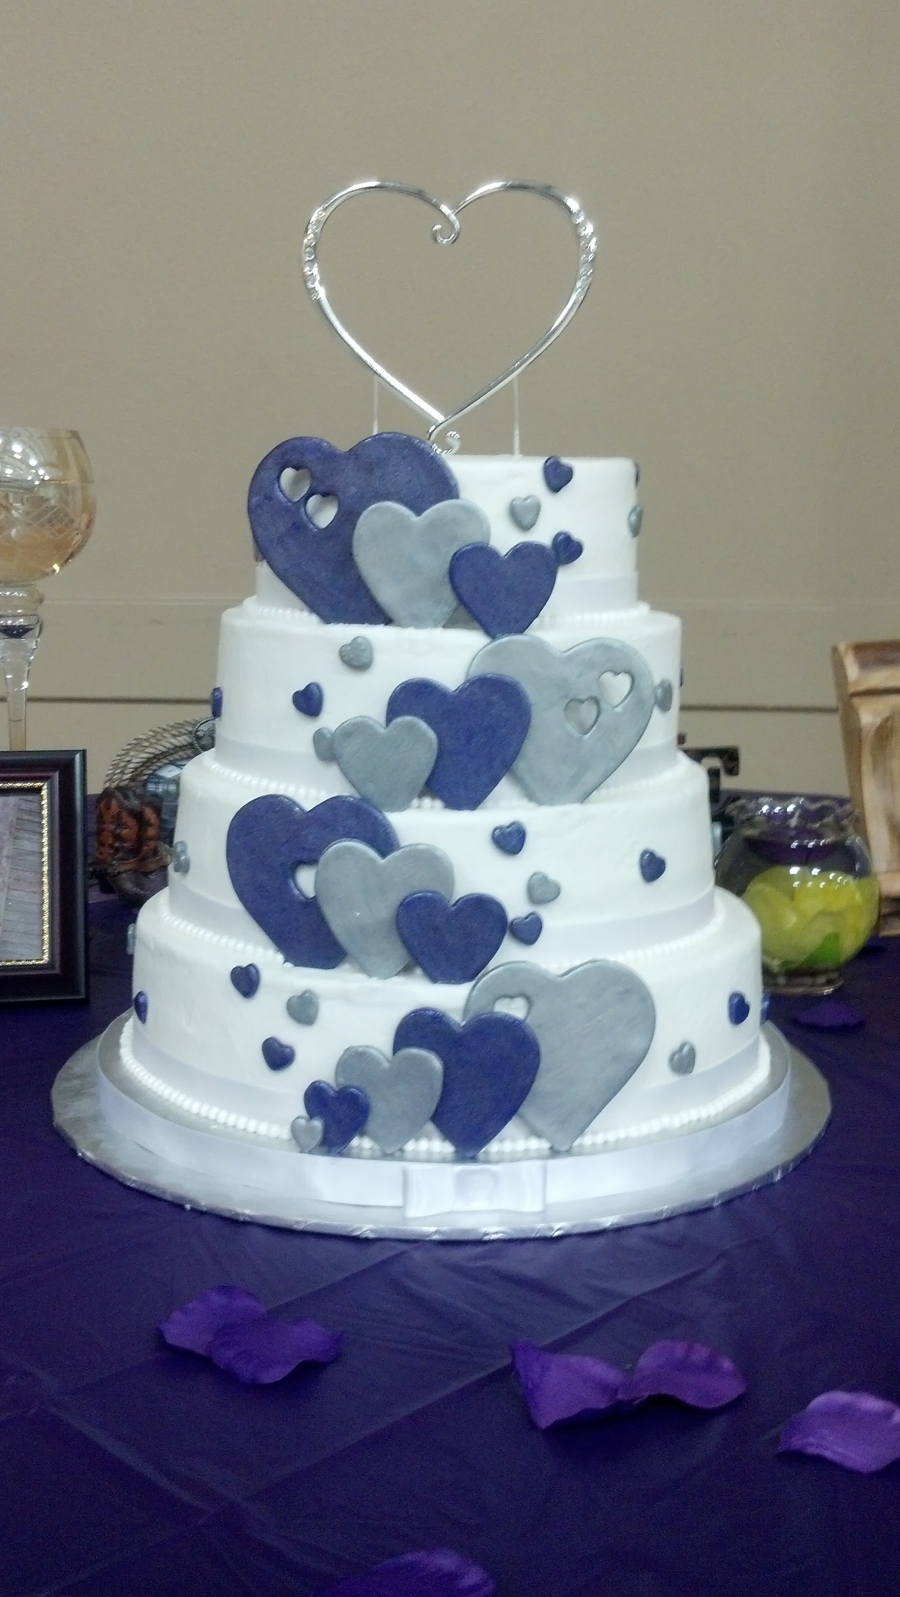 Purple And Silver Hearts Wedding Cake on Cake Central